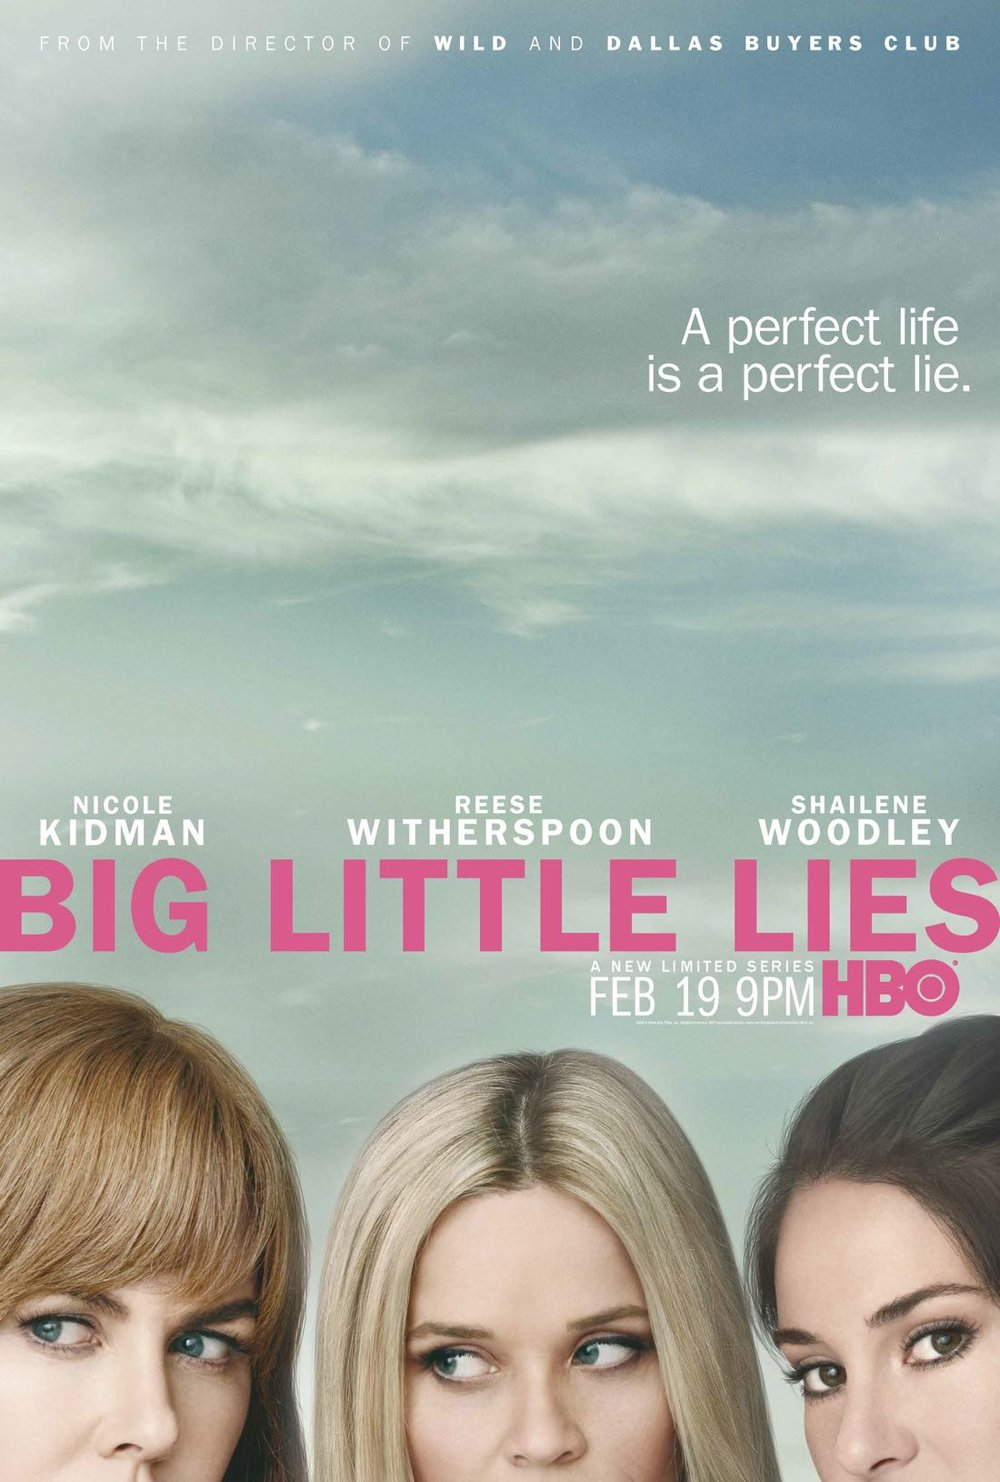 Big Little Lies This TV show came up on my radar months before it premiered, and the plot alone already made me realize how much I was going to love it. Though this show is a miniseries, all 7 episodes are WORTH it. This show is like Gossip Girl & The O.C. mixed together to create this amazing adult version of everything we could have wanted AND MORE. The show definitely touches on some sensitive subjects (rape + abuse) so if those are things that you'd like to not see, then this show may not be for you.  Oh and Reese Witherspoon? Iconic